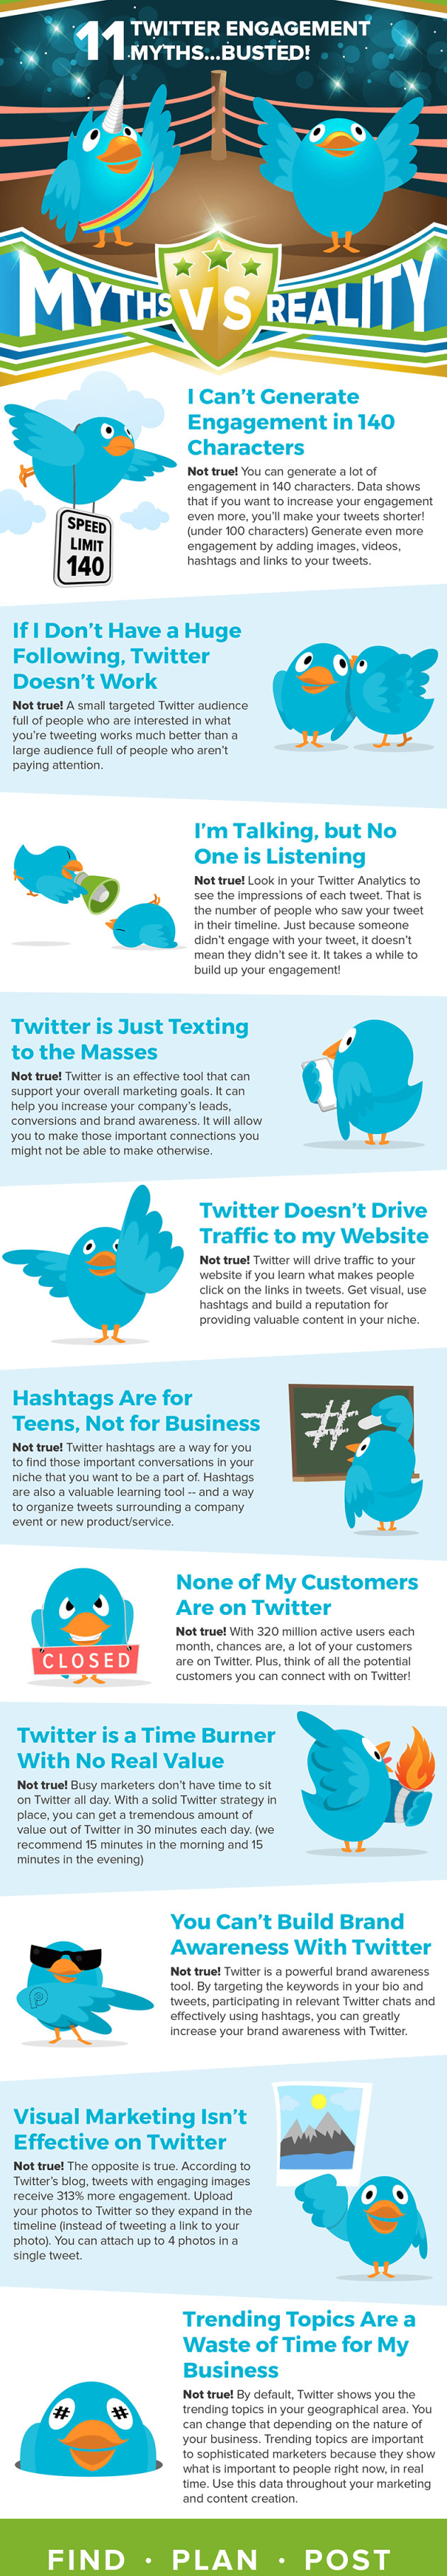 11-myths-that-are-holding-your-business-back-on-twitter1